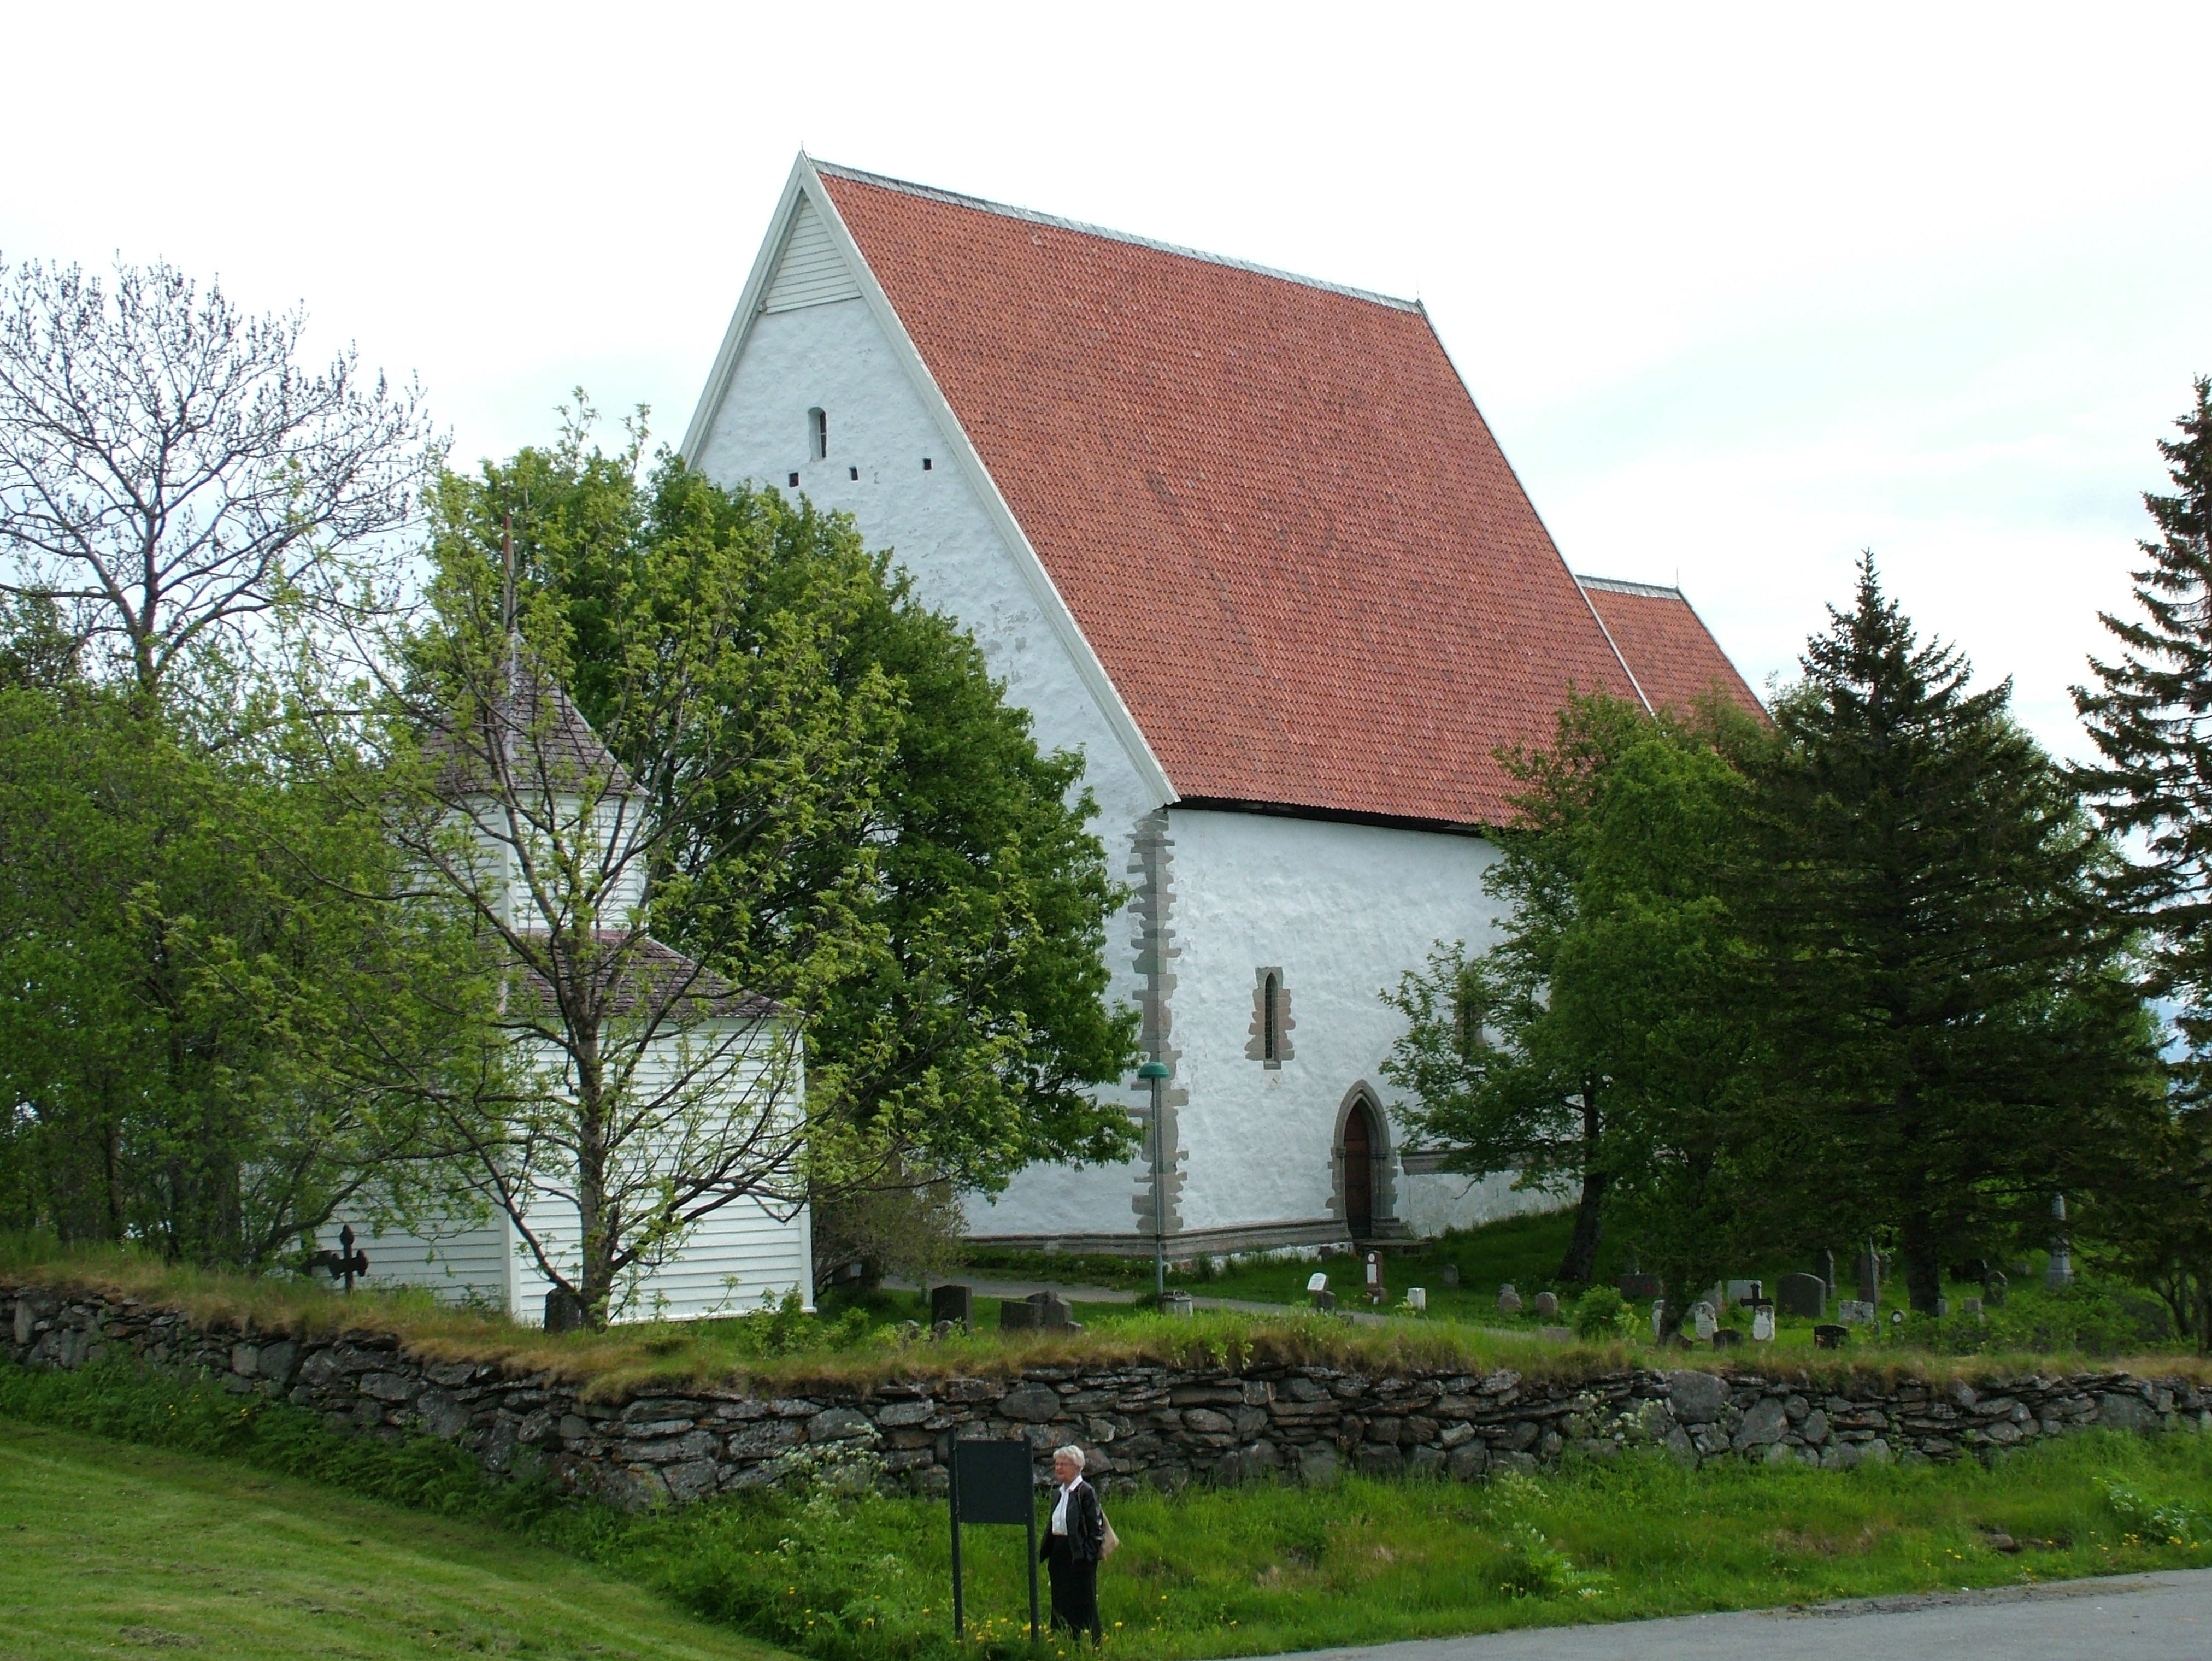 View of Trondenes Church, Norway. Photo taken on June 15, 2005.